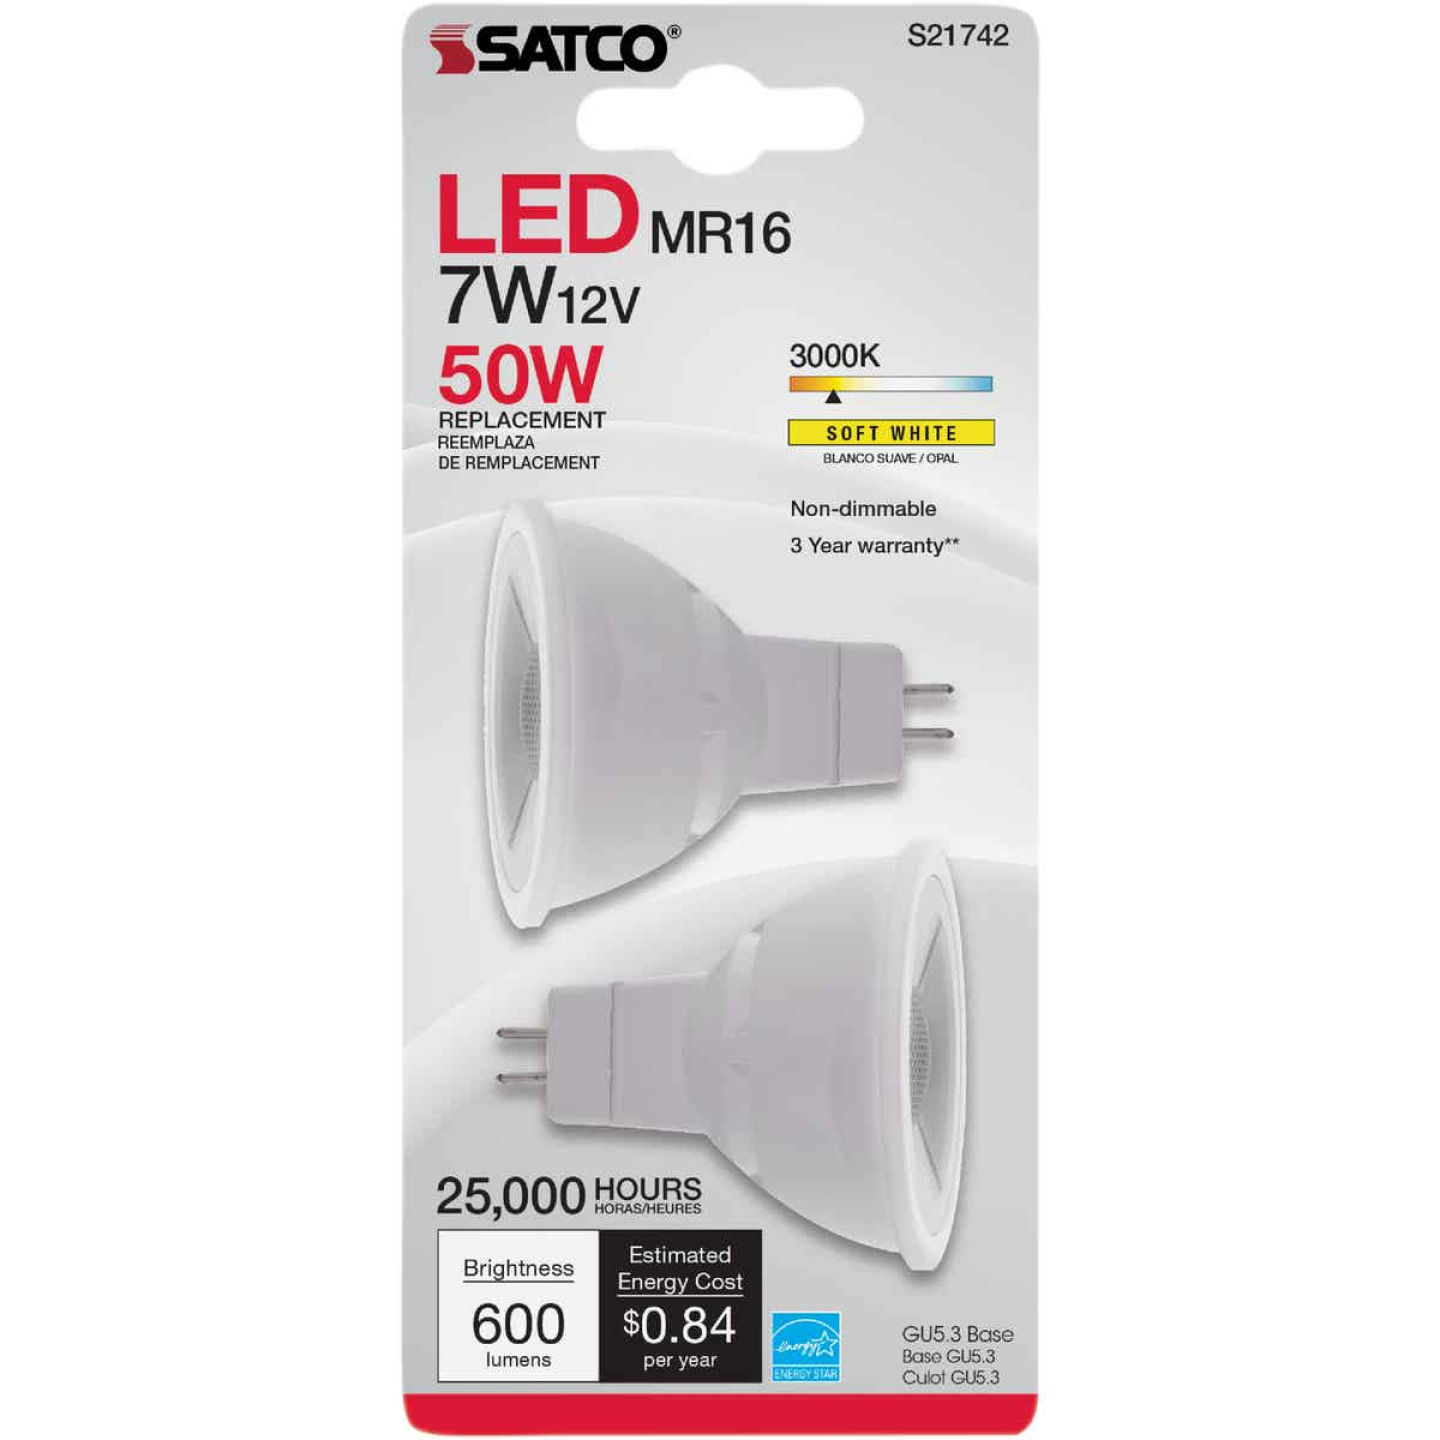 Satco Nuvo 50W Equivalent Warm White MR16 GU5.3 LED Floodlight Light Bulb (2-Pack) Image 2